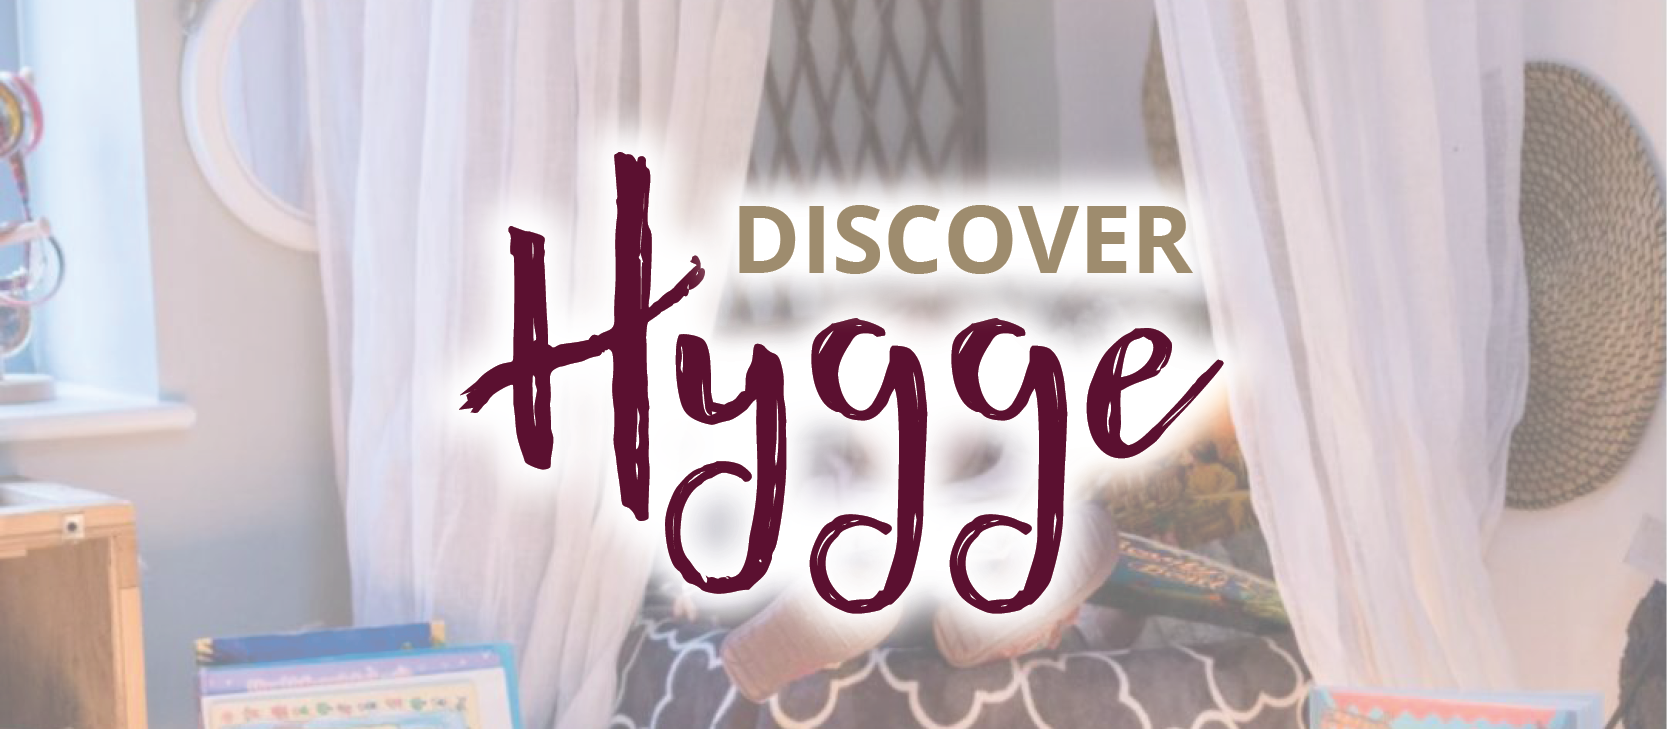 Easterly Point & Norwich - Discover Hygge - 18/10/21